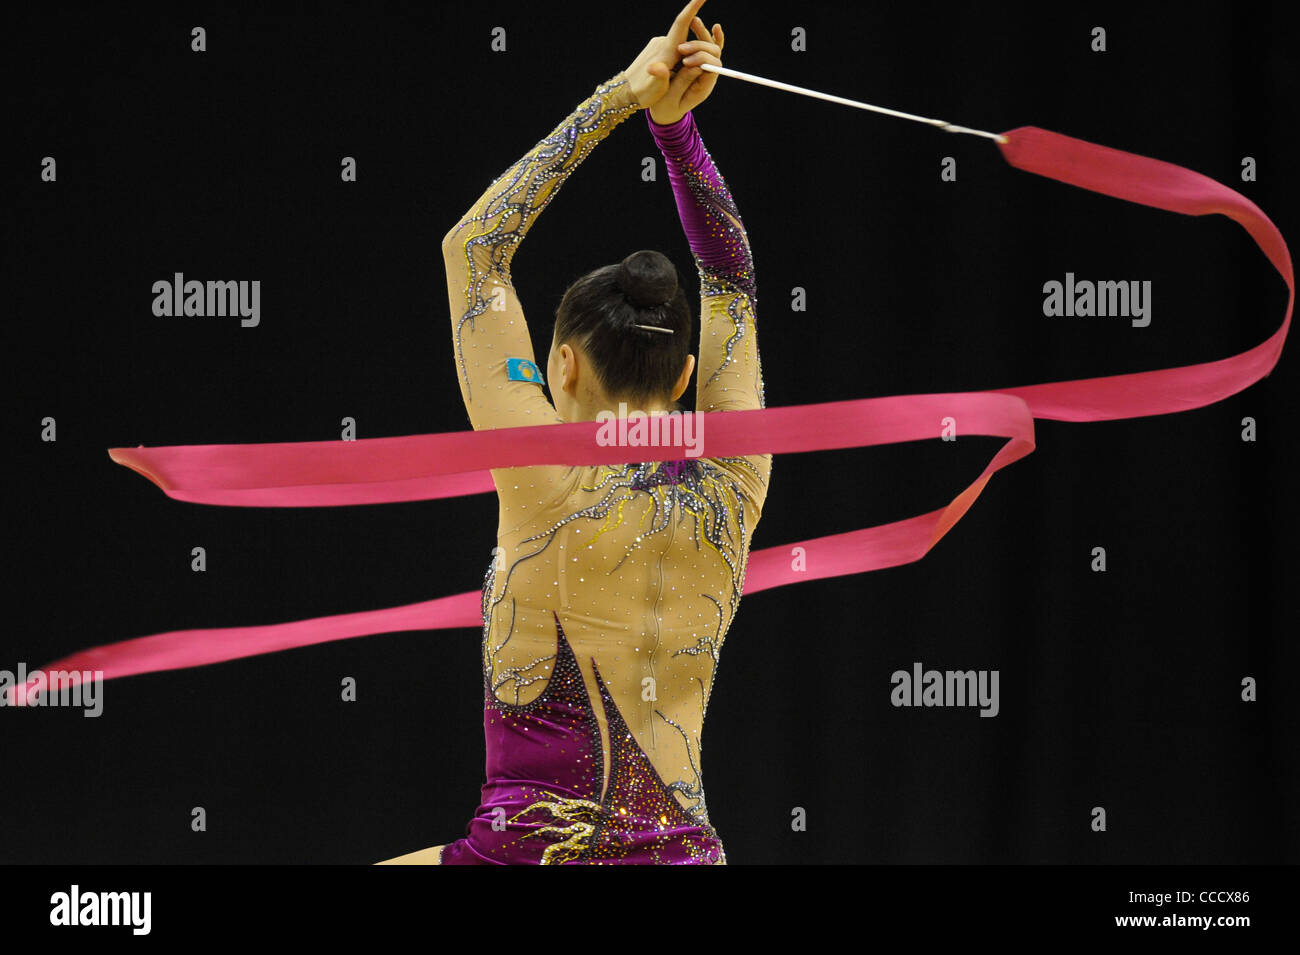 Olympic Test Event Gymnastics. O2 Arena London England.18.1.12. Rhythmic Competition. ALYABYEVA Anna - Stock Image